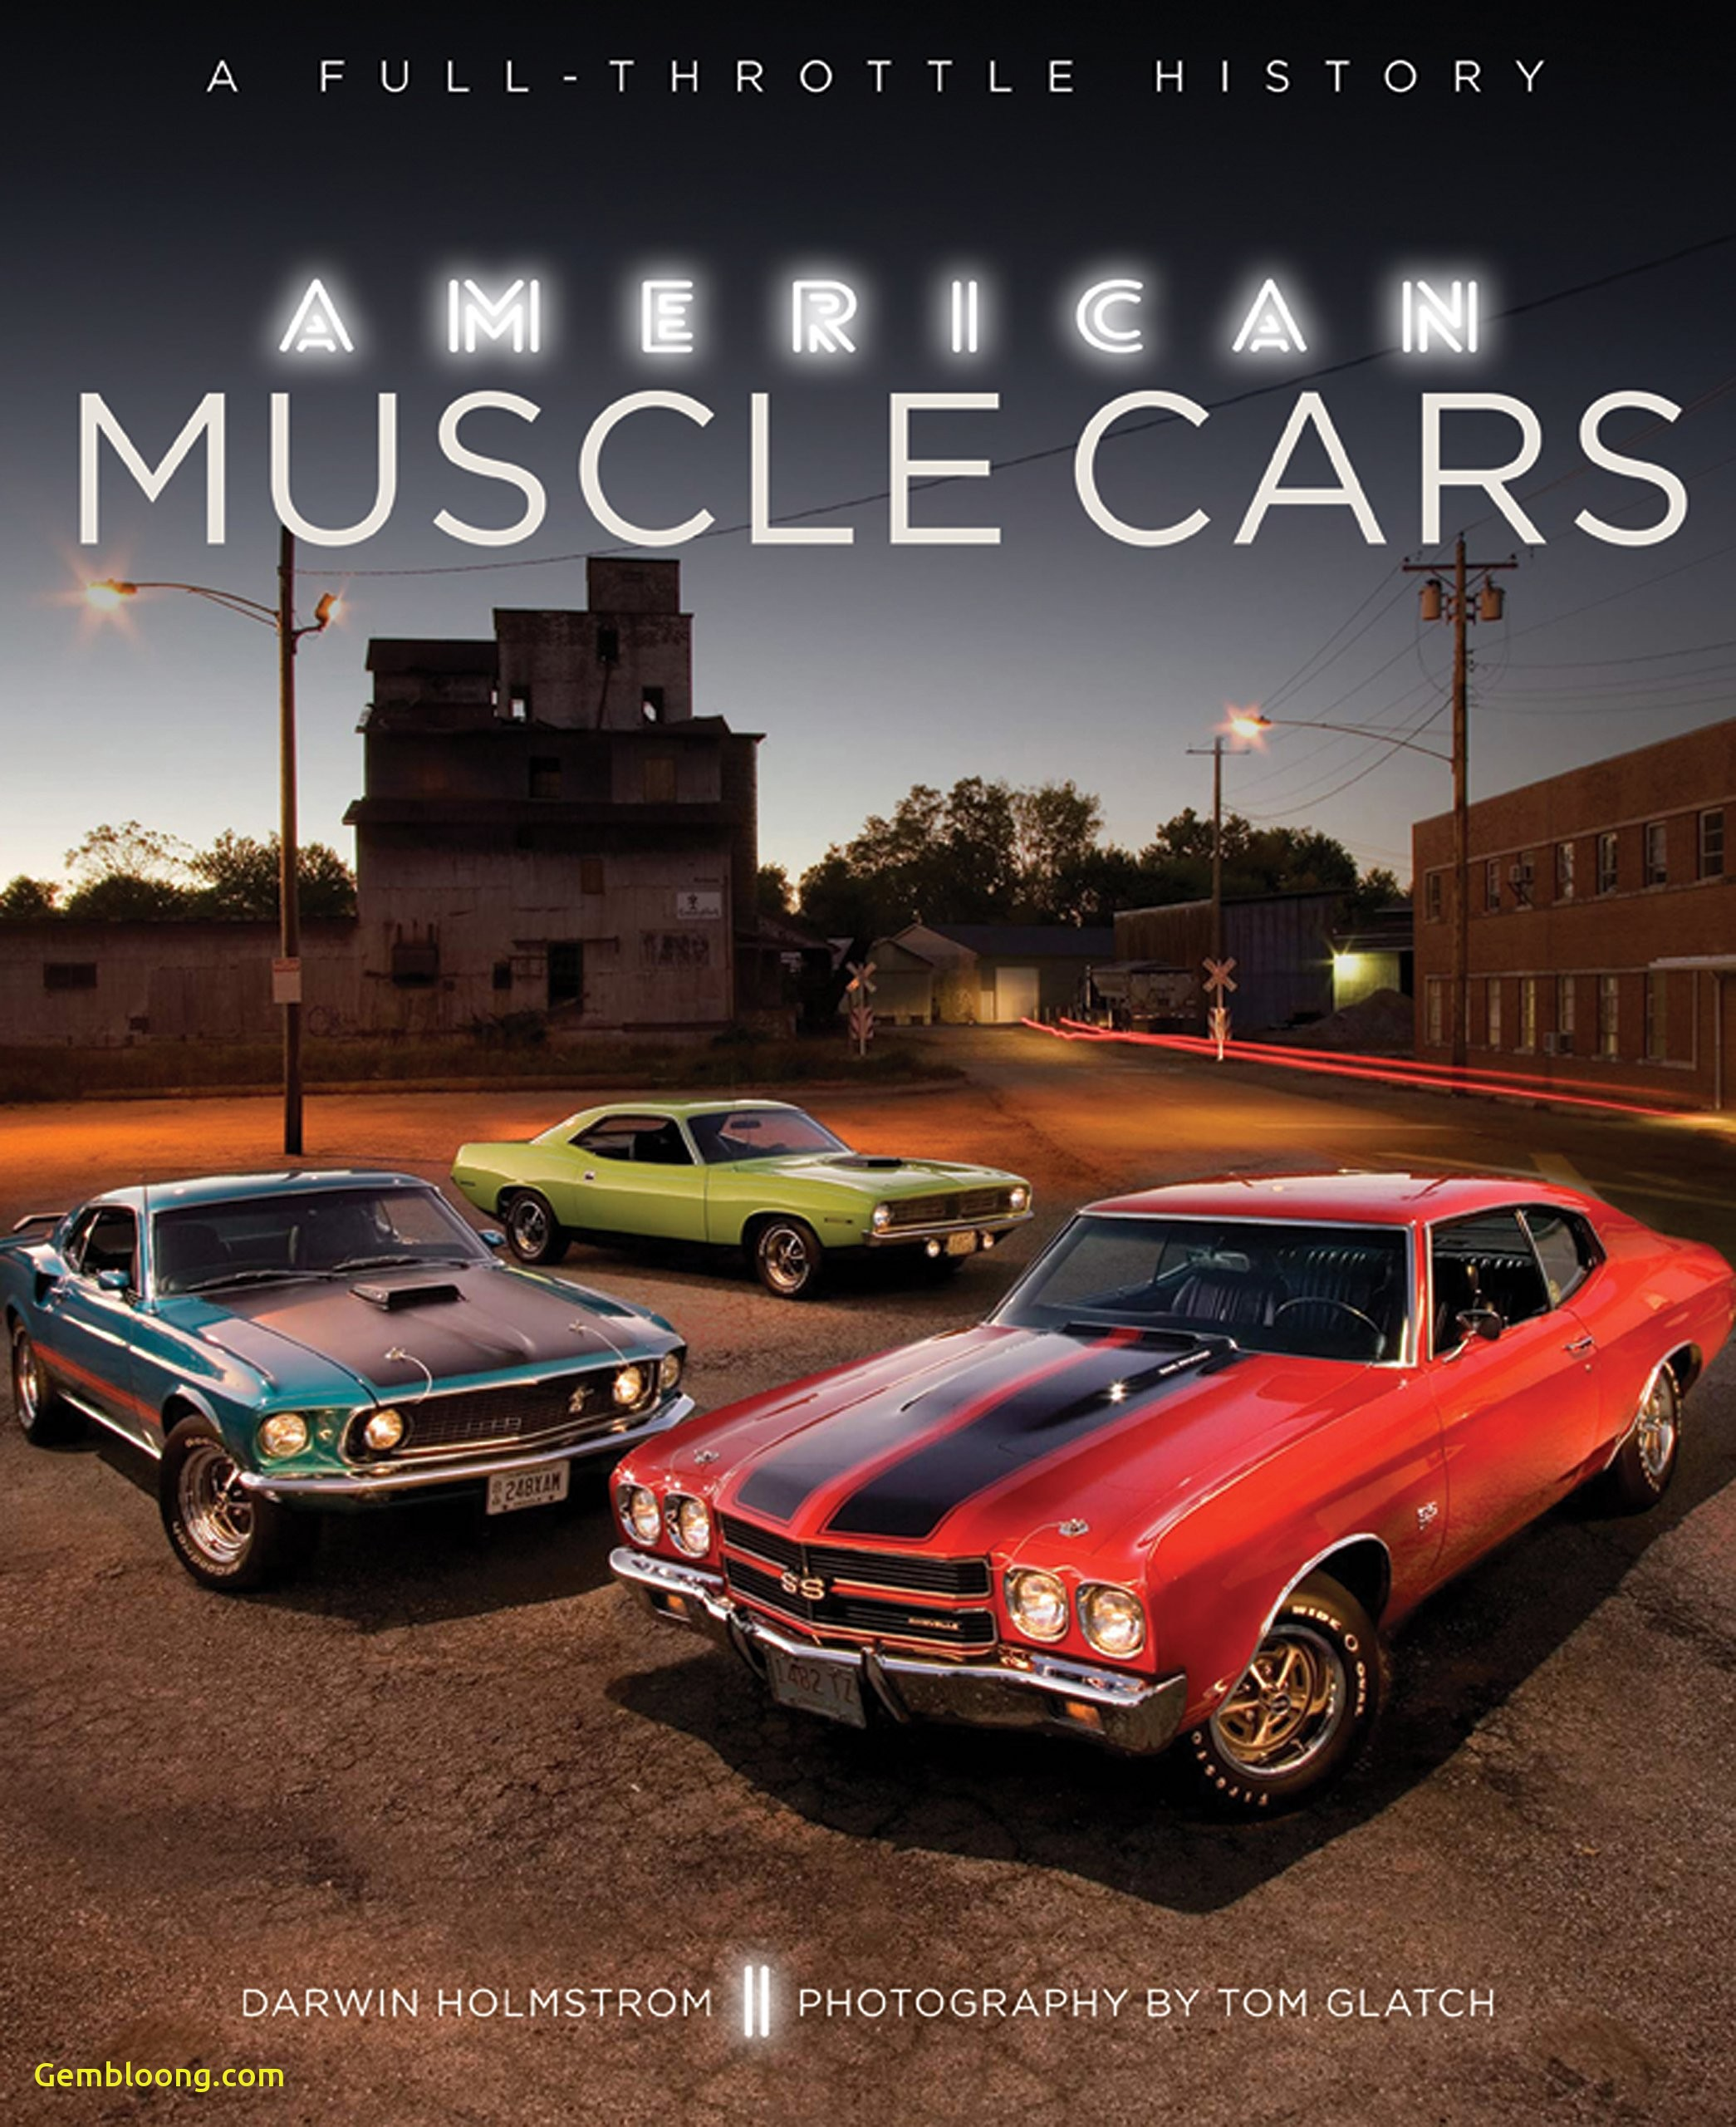 Muscle Cars for Sale Inspirational American Muscle Cars A Full Throttle History Darwin